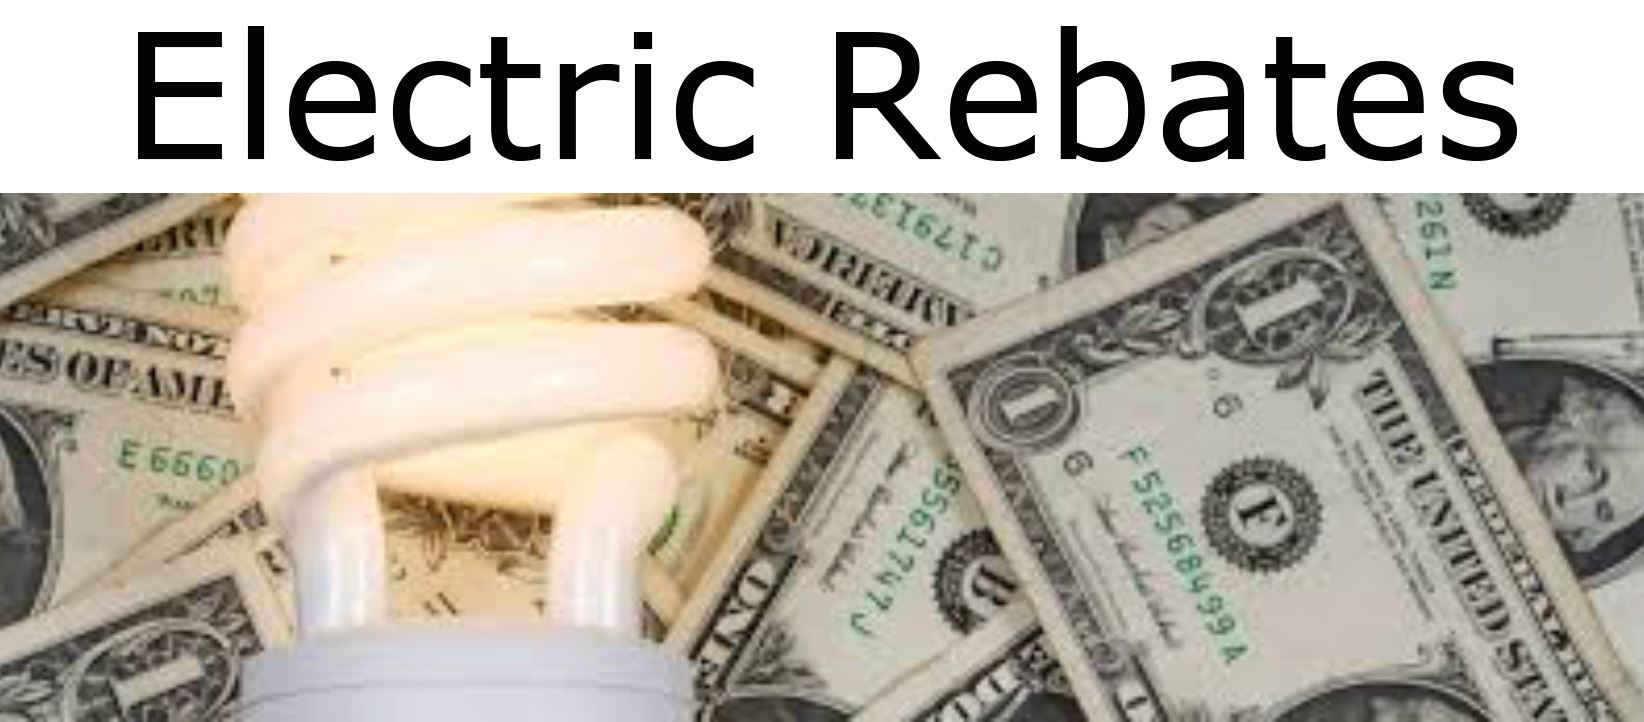 Electric Rebates